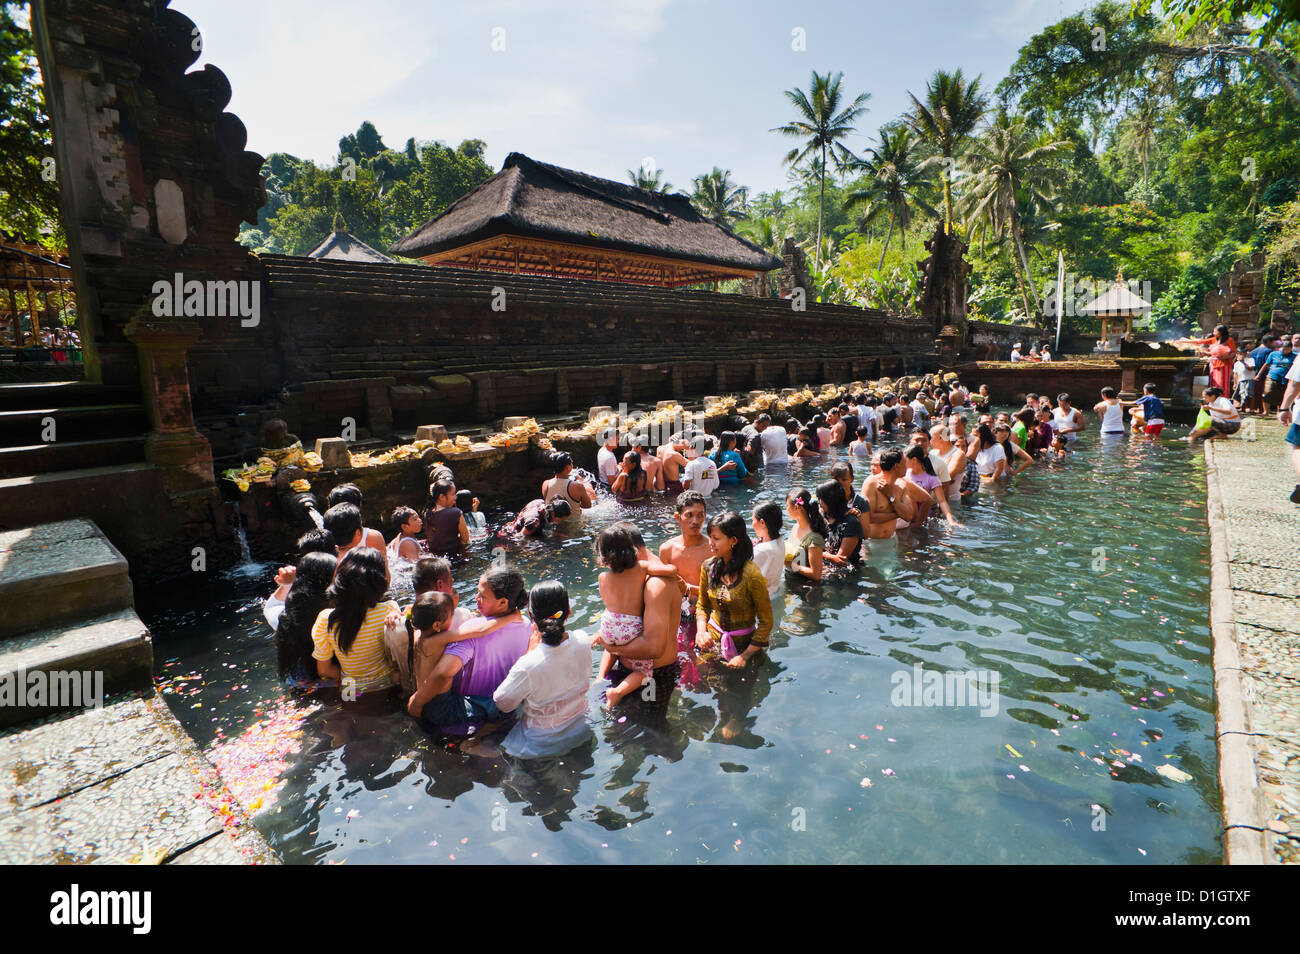 Balinese people in holy spring water in the sacred pool at Pura Tirta Empul Temple, Tampaksiring, Bali, Indonesia - Stock Image